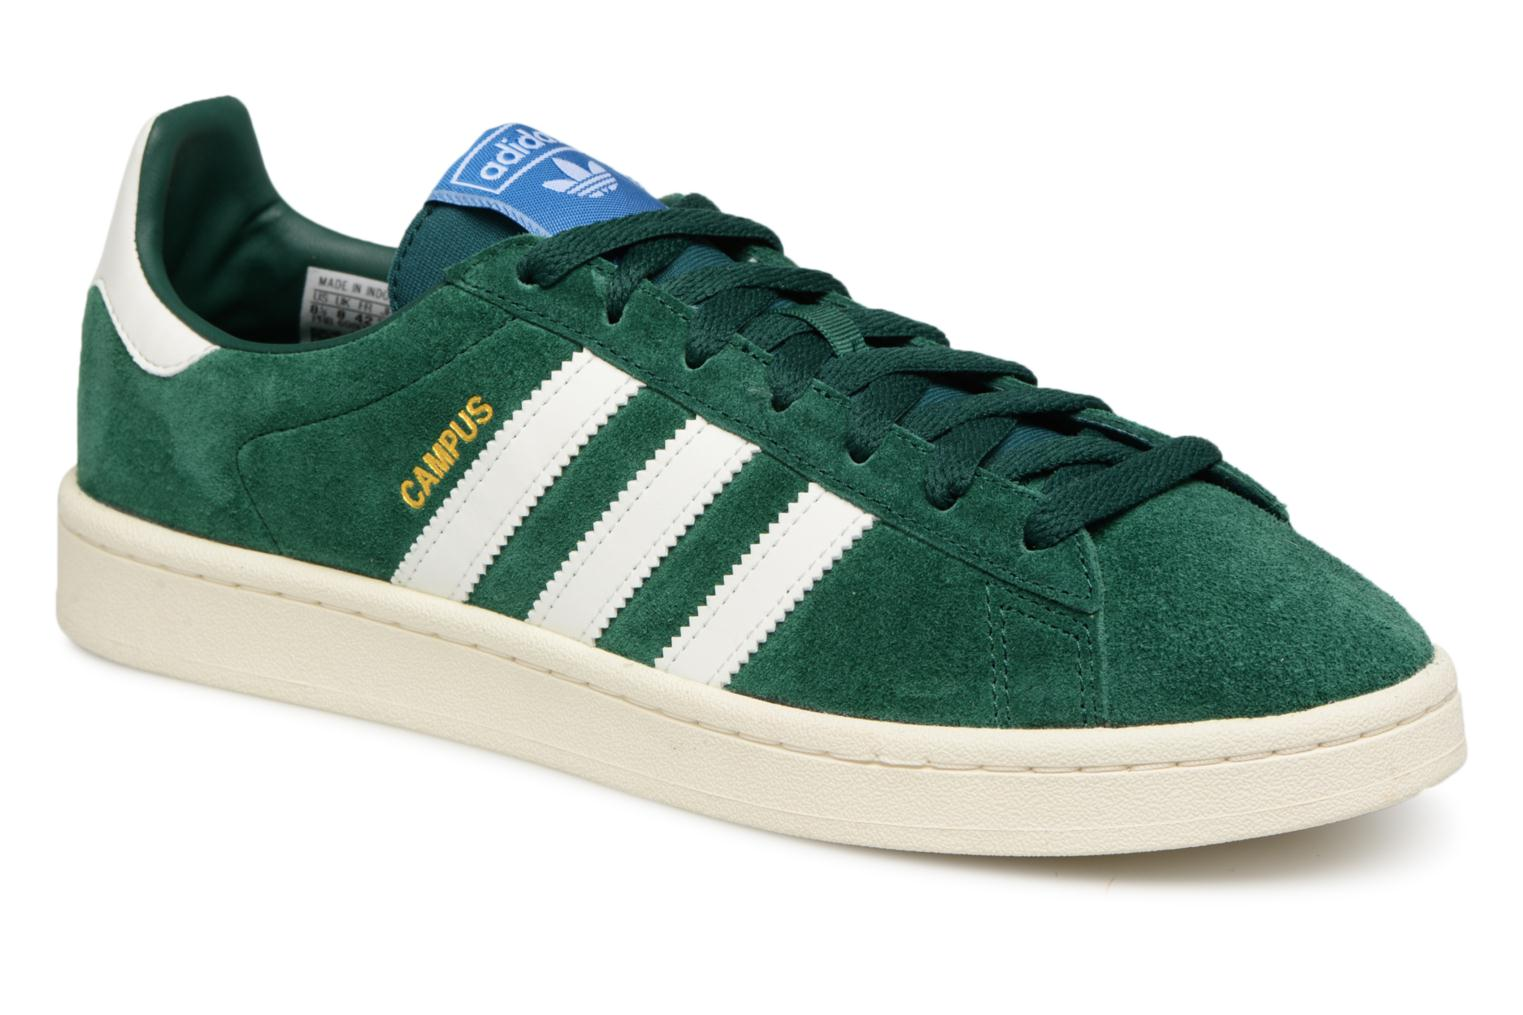 Sneakers Adidas Originals Groen